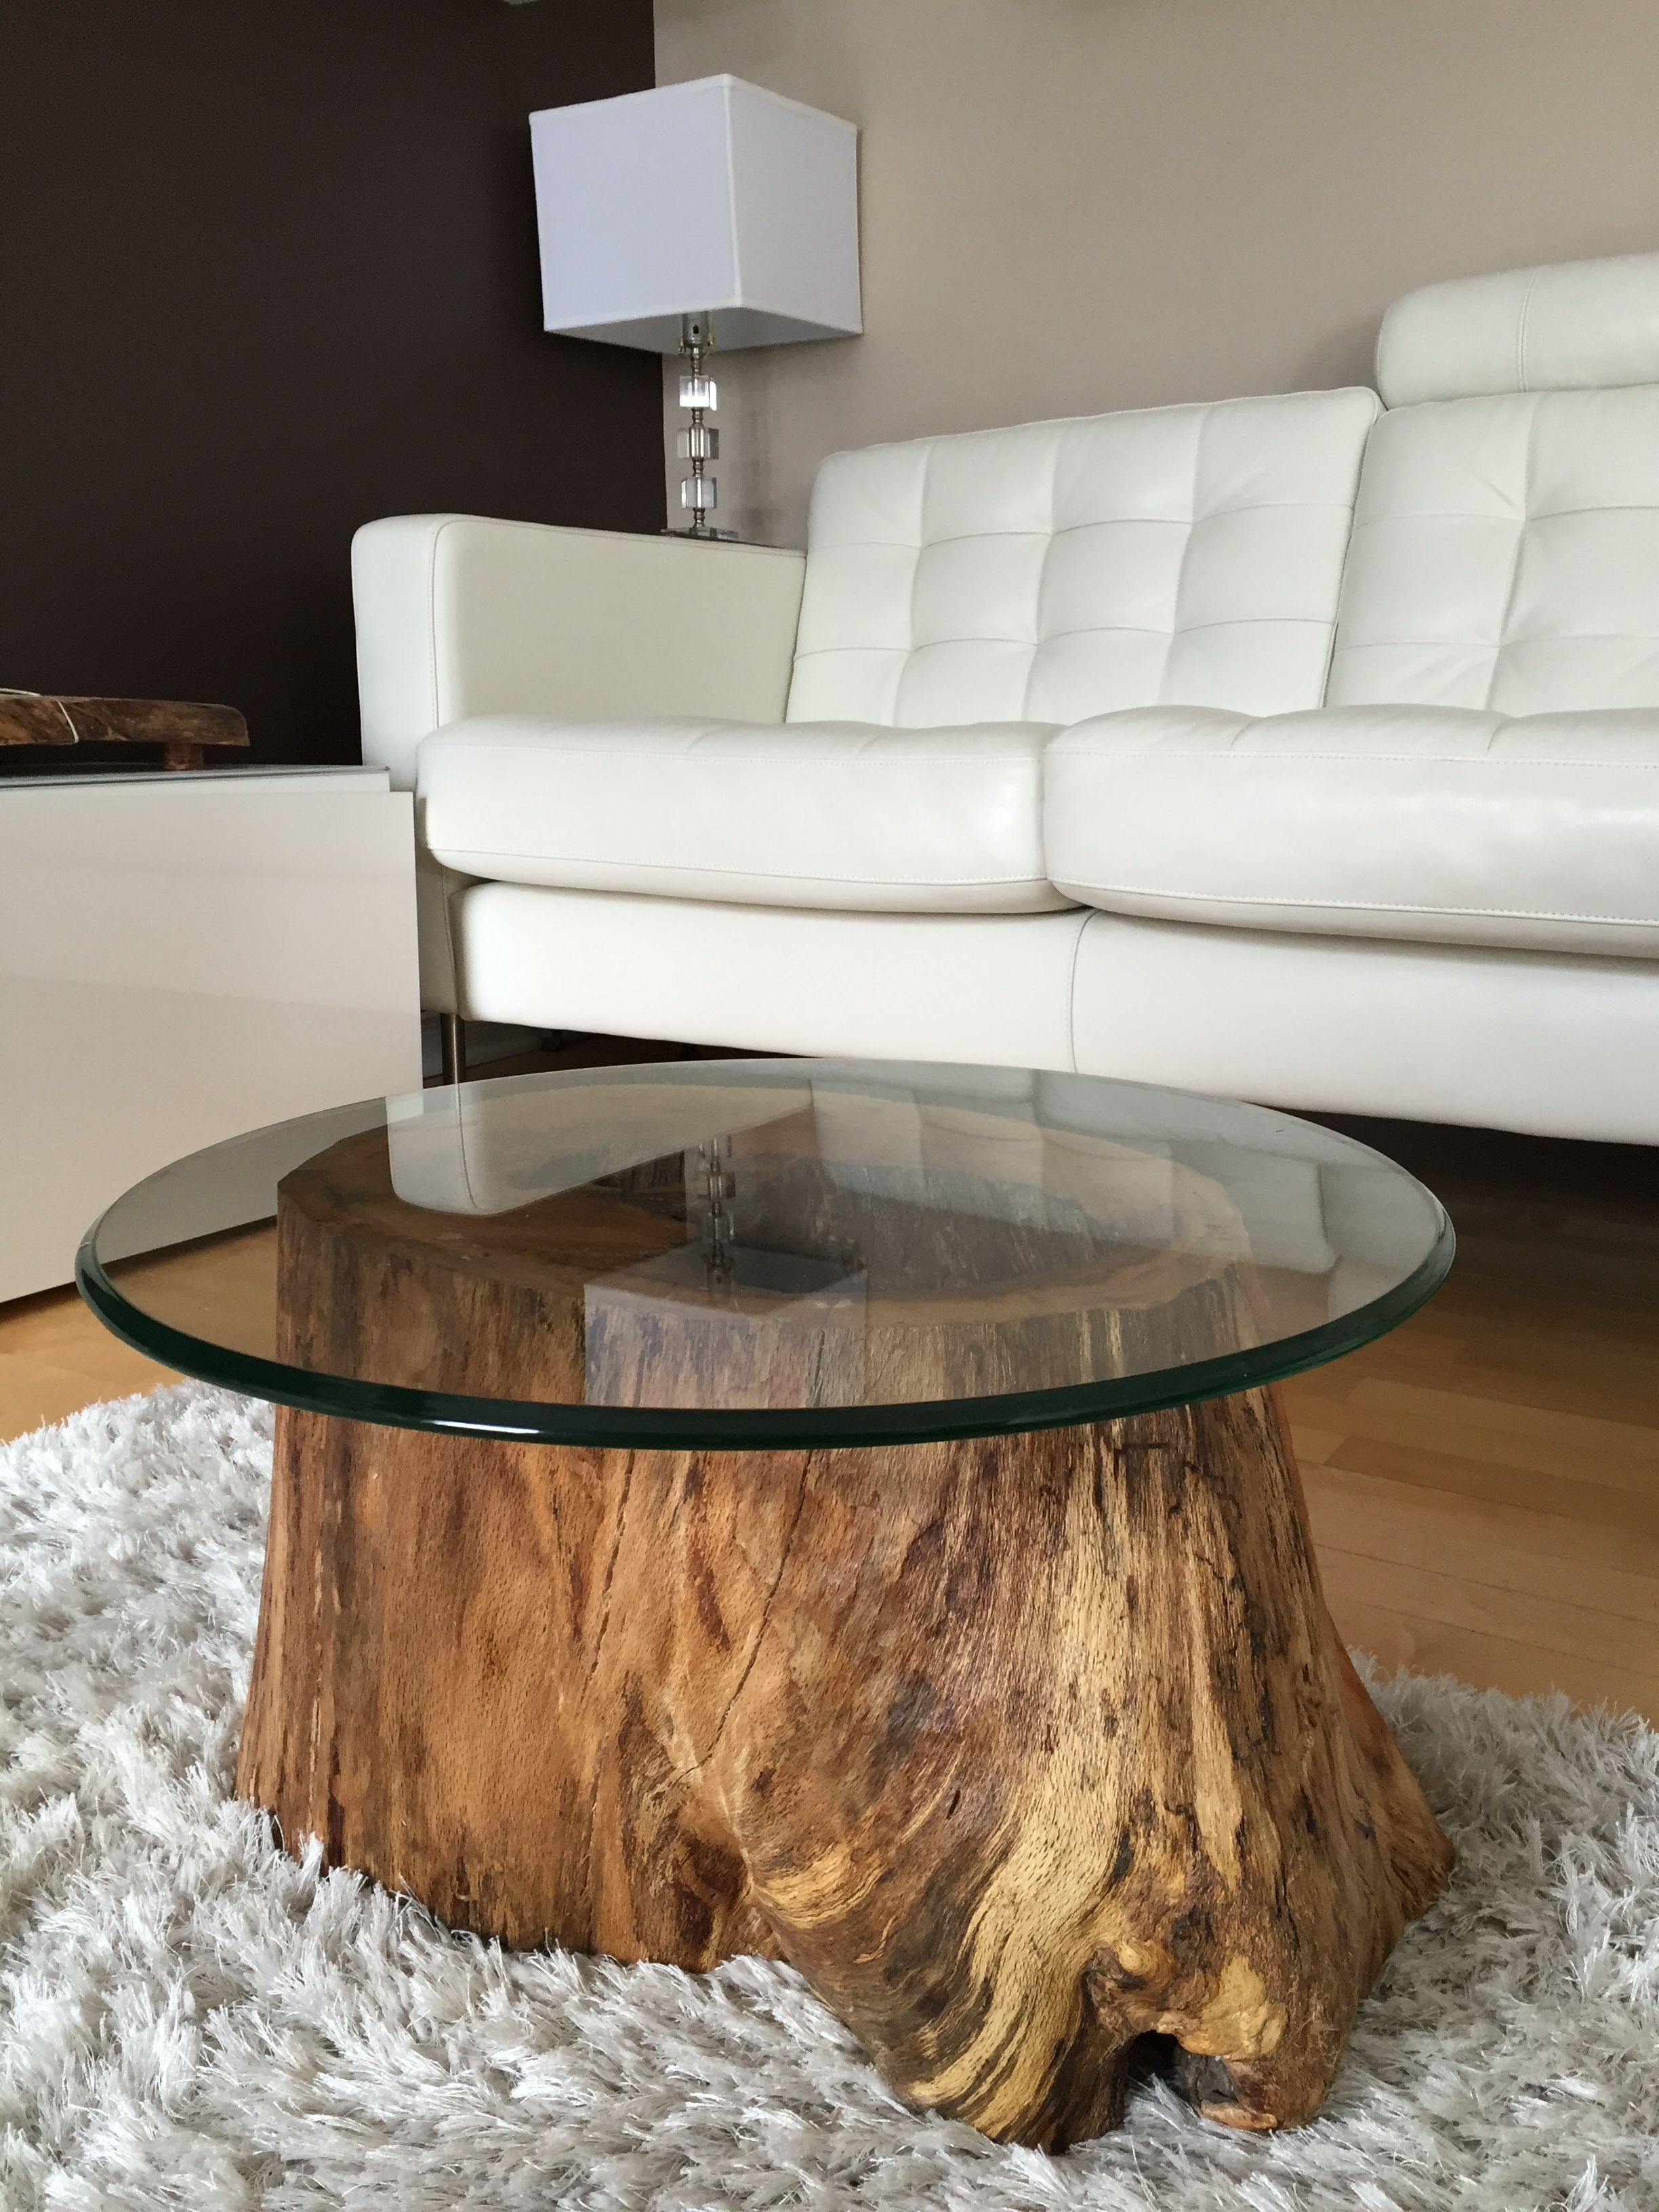 root coffee tables log furniture large wood stump accent table side rustic eco friendly reclaimed rectangle patio cherry nightstand painted nightstands black cube end clear touch